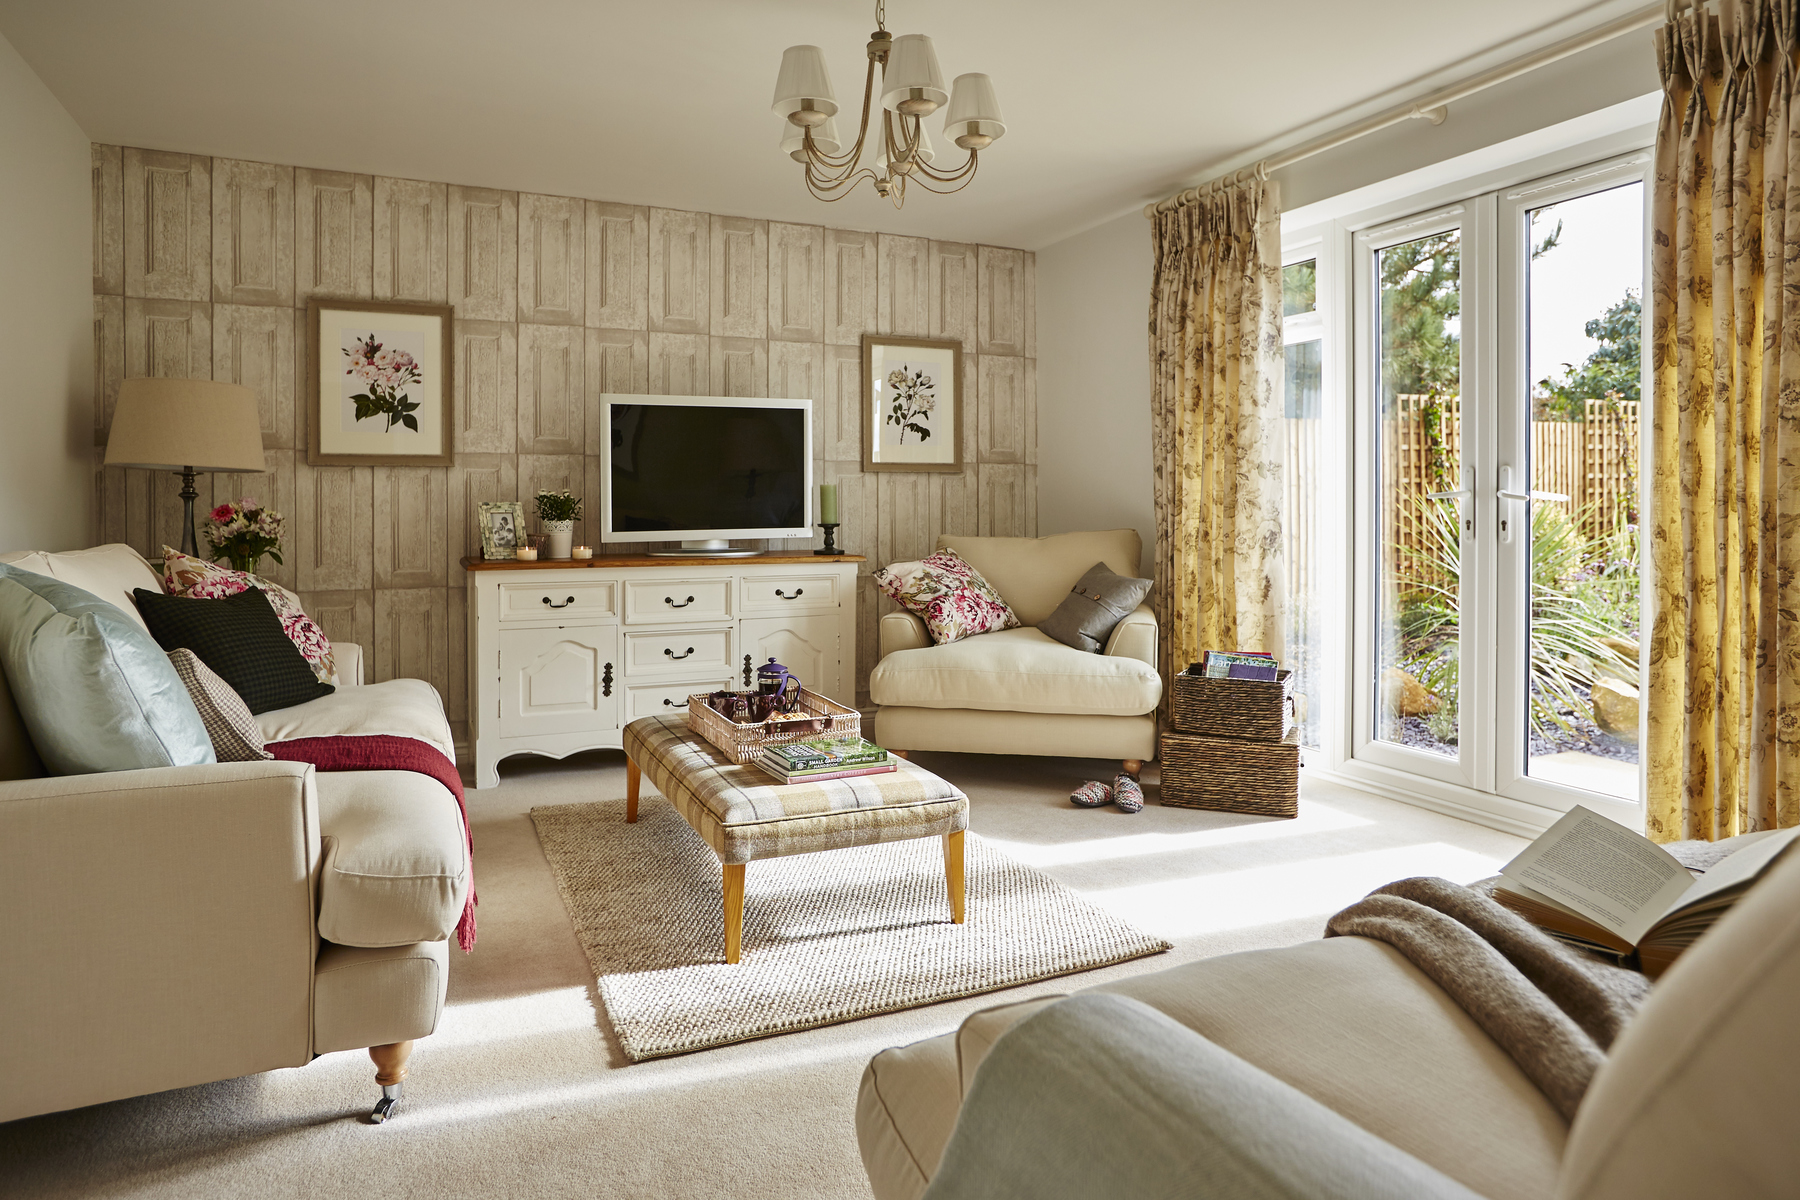 tw_westmids_nursery_meadow_pa49_thornford_lounge